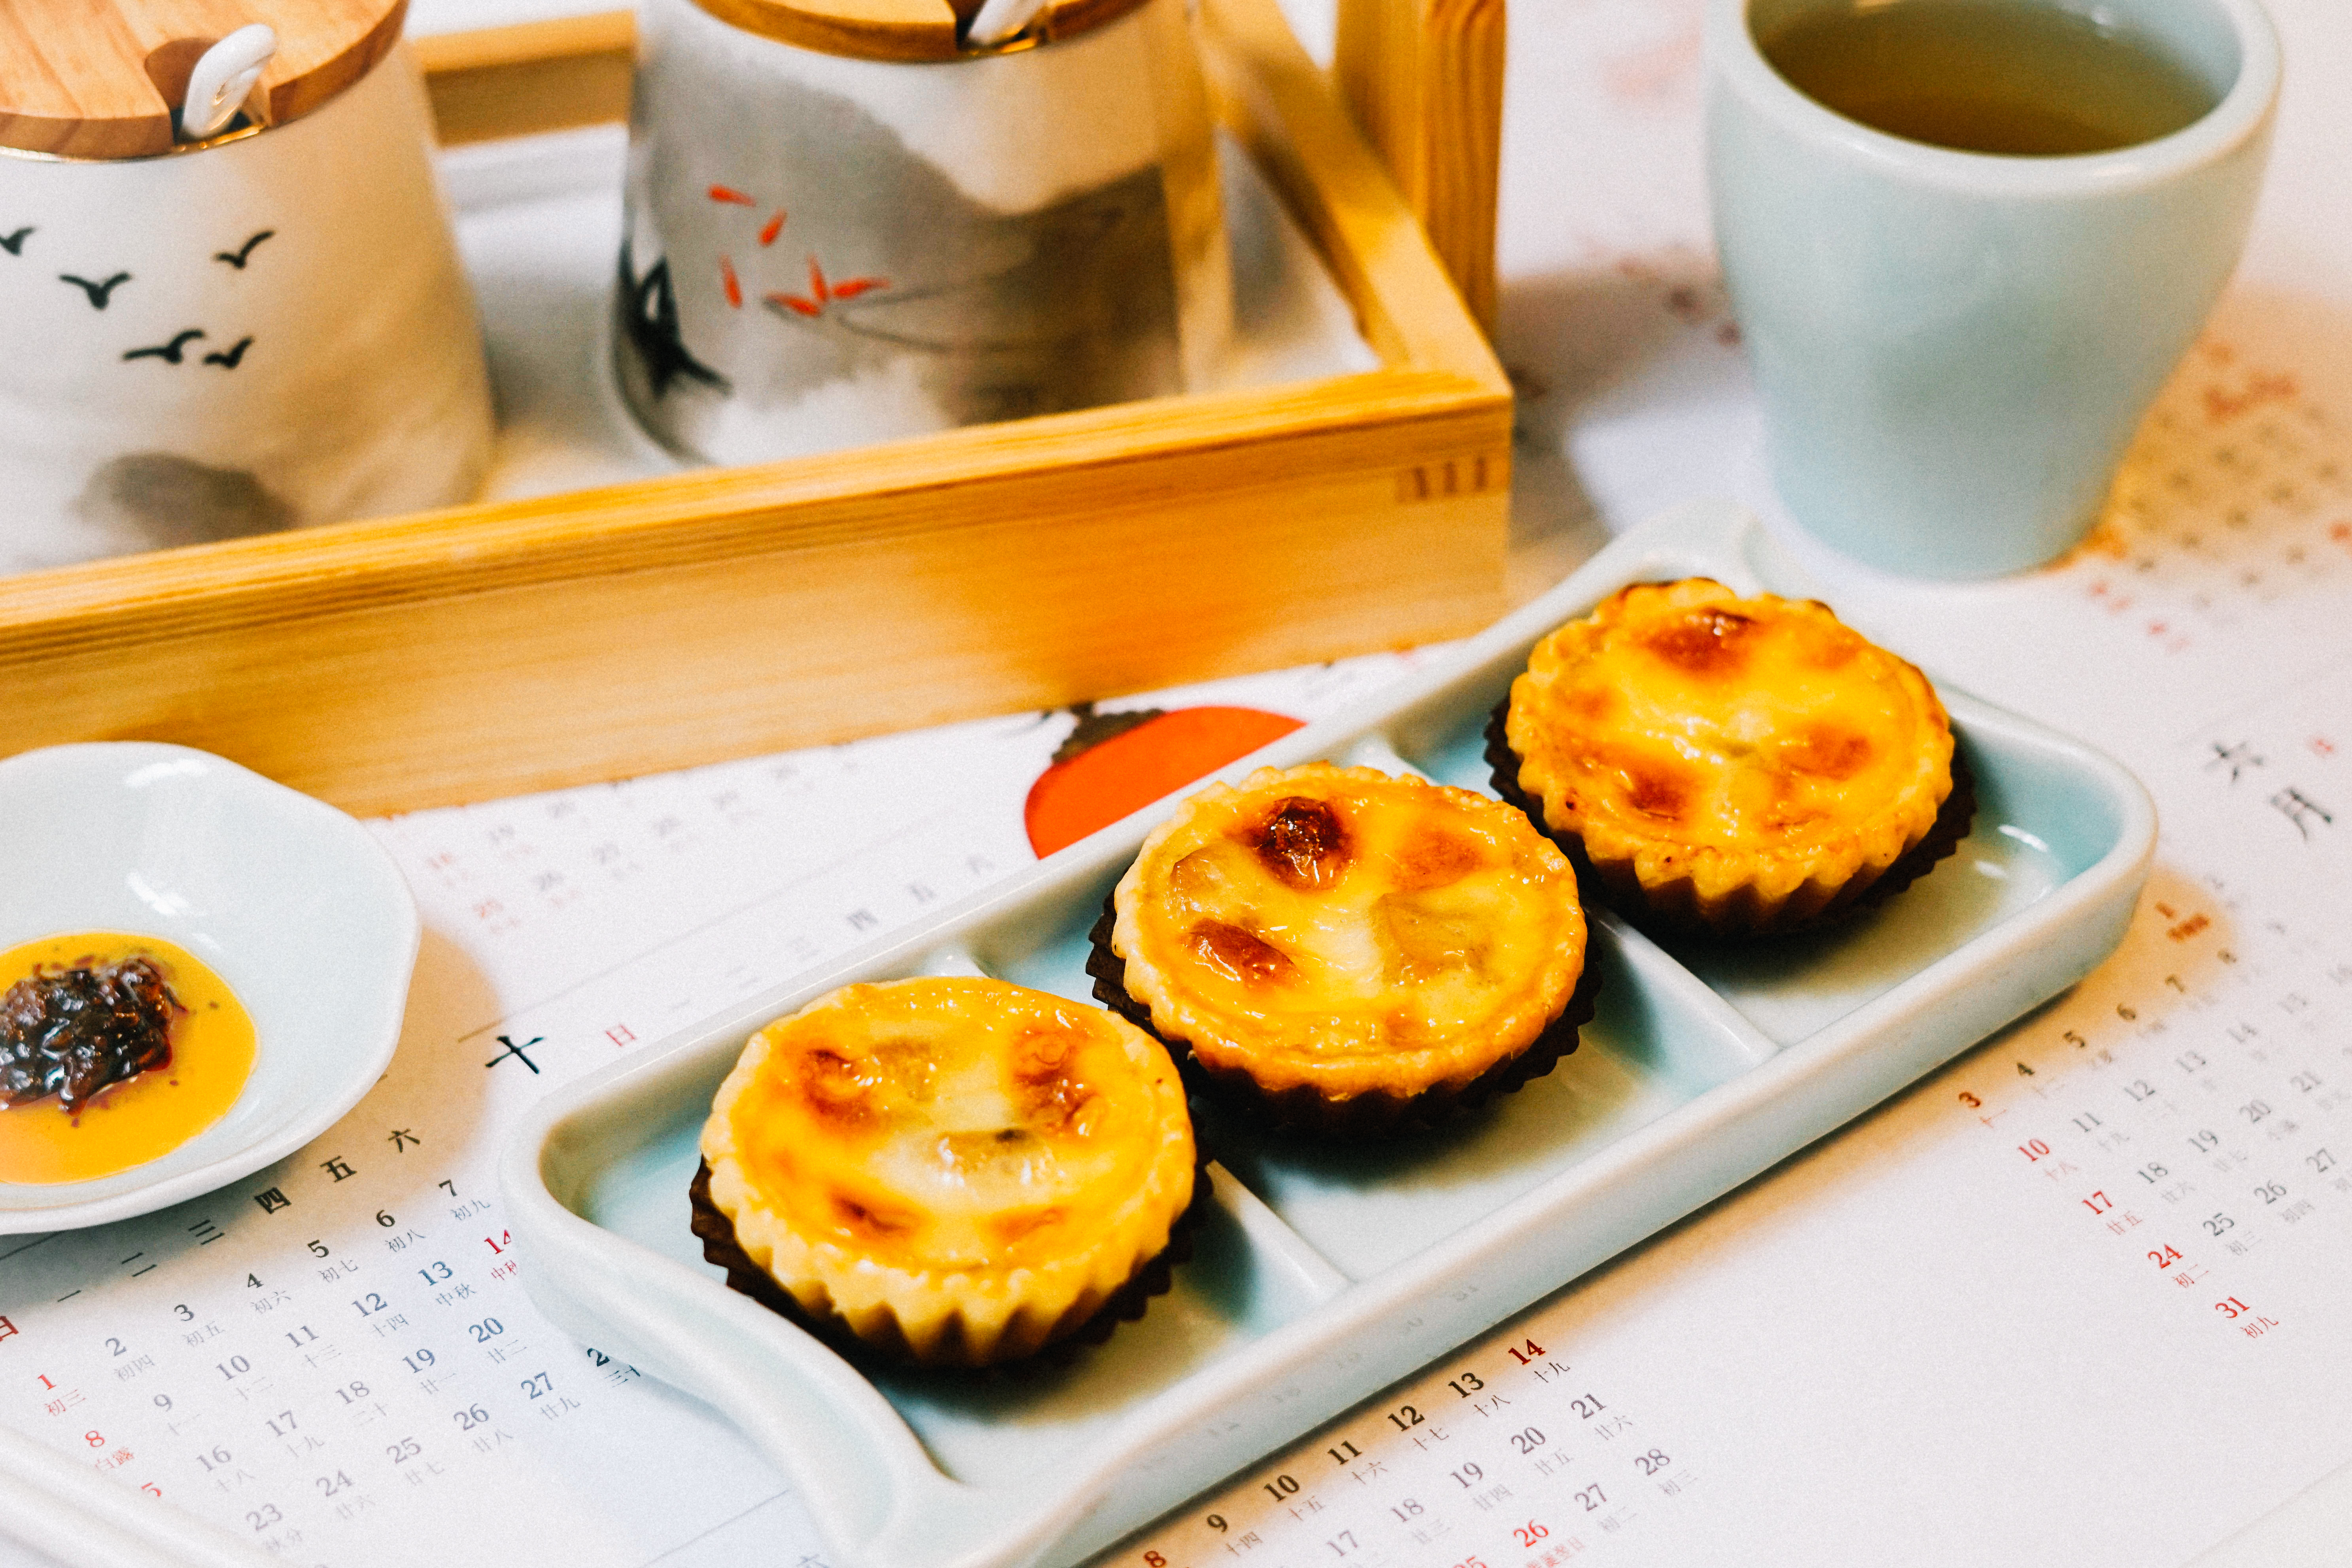 Baked Abalone and Cheese Tart __憯恍_擳.JS